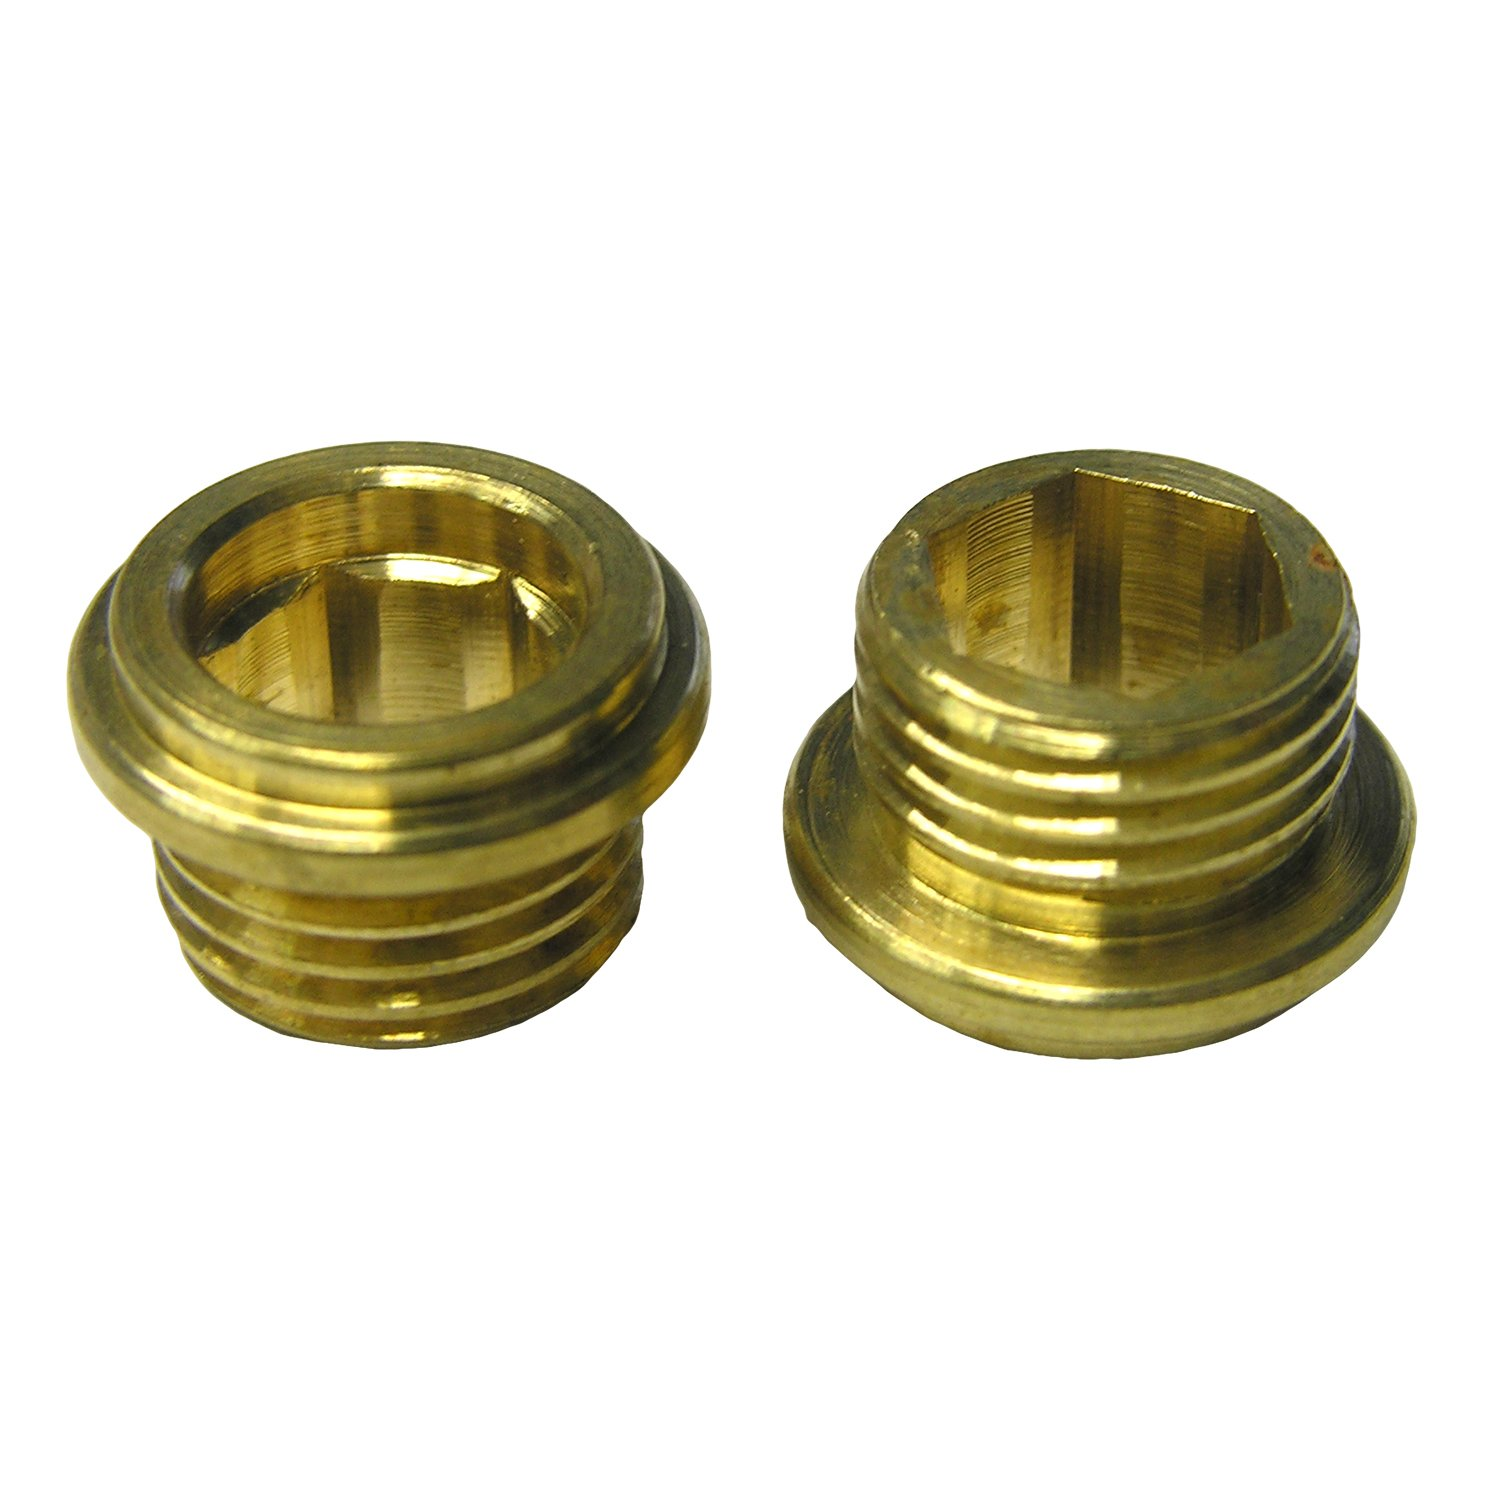 LASCO SB-58 1/2-Inch x 20 Thread Faucet Seat for American Standard Brand Faucets, 3/8-Inch, Brass, 2-Pack by LASCO